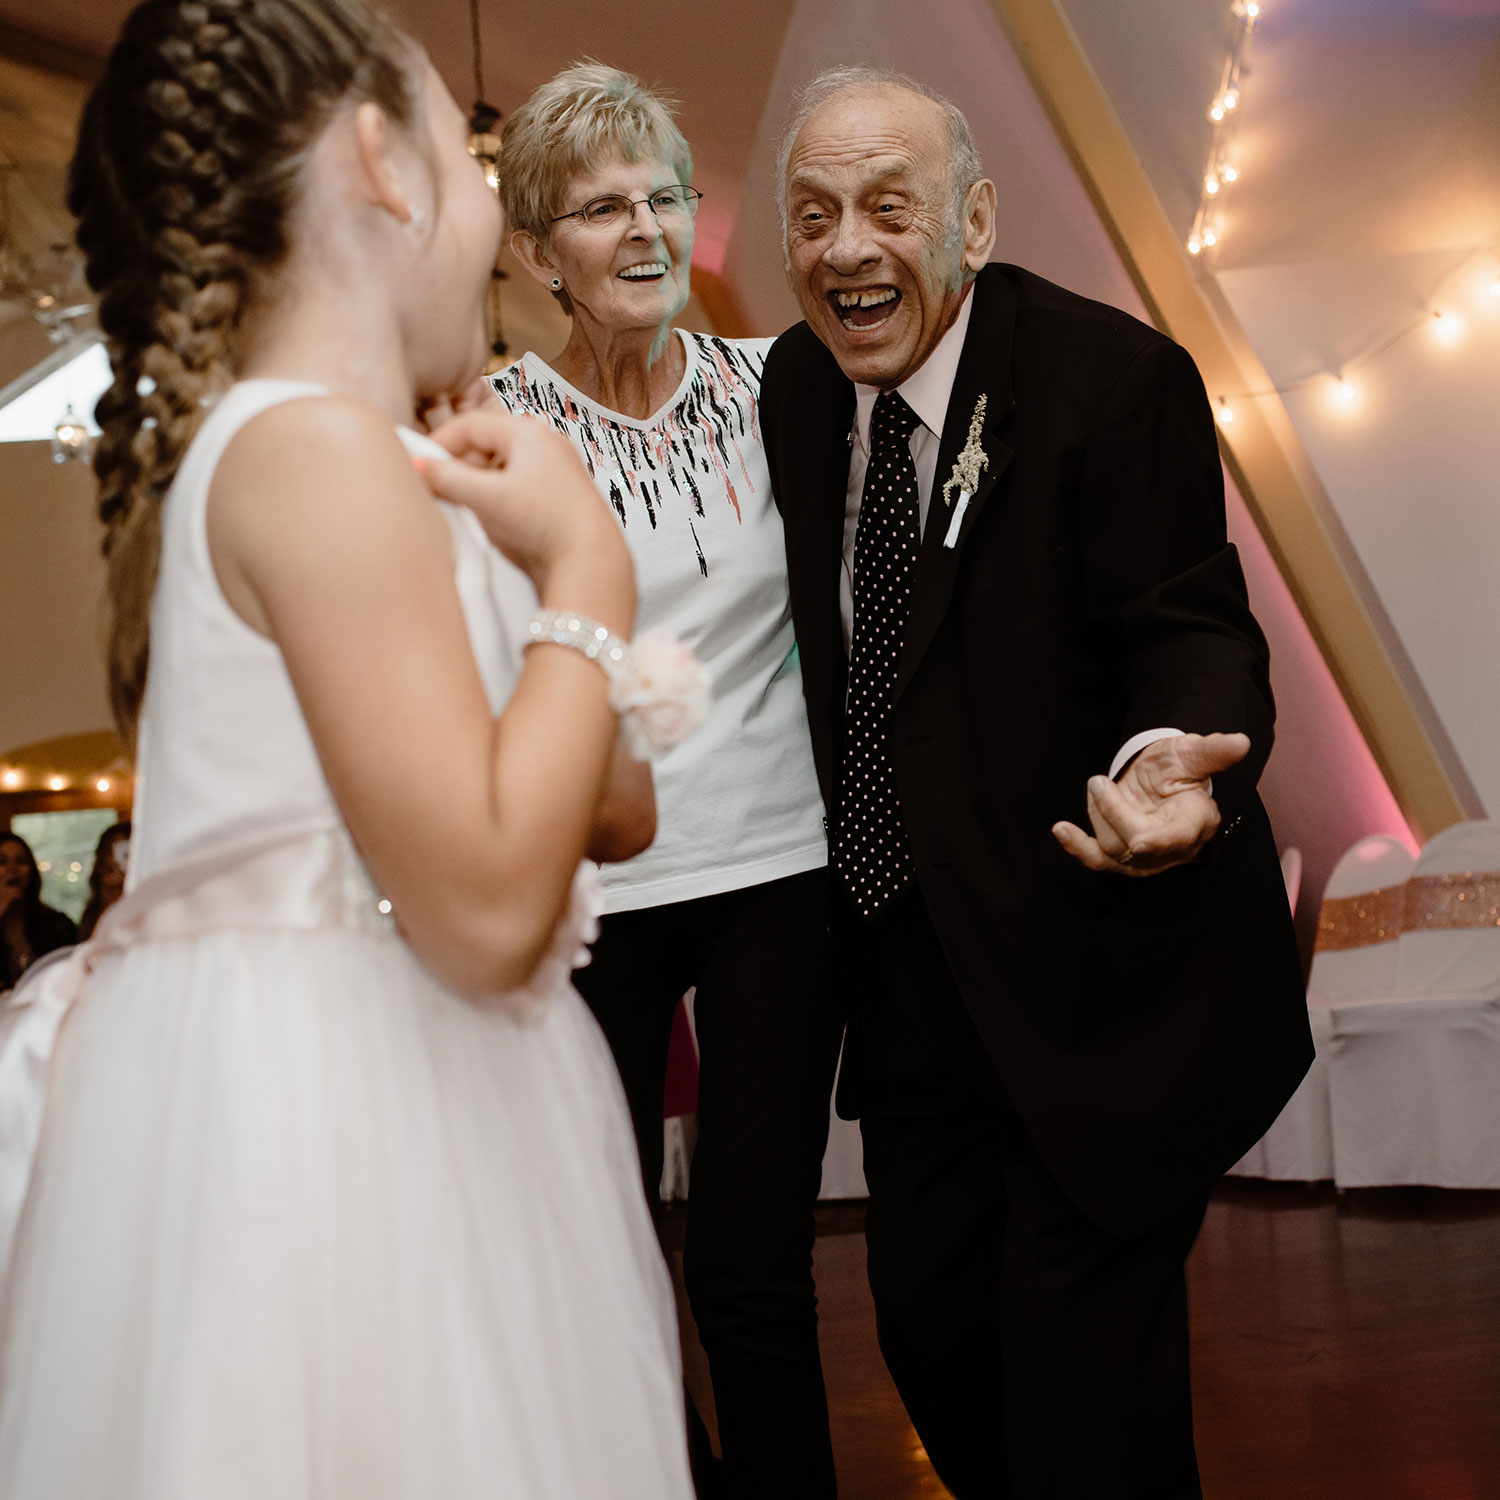 grandparents-laughing-to-get-child-to-dance-wedding-summerset-winery-indianola-iowa-raelyn-ramey-photography.jpg